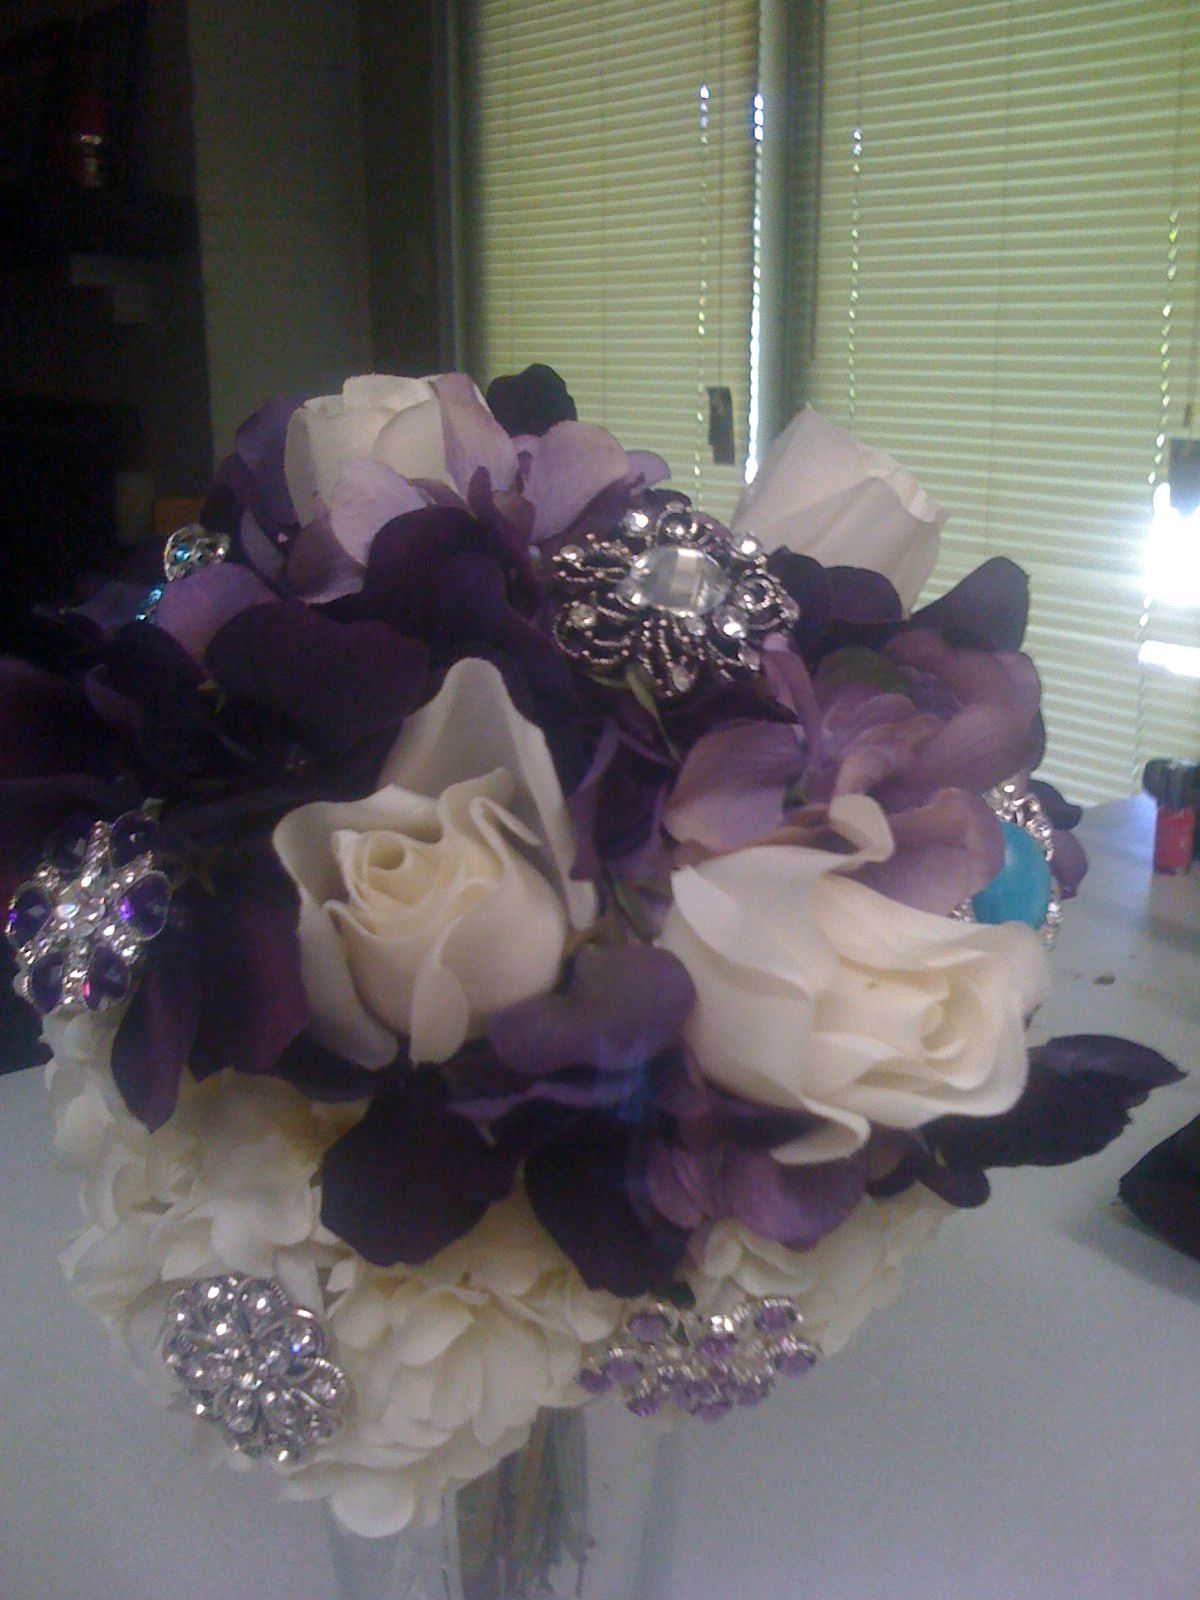 Wix silk flowers wedding planners and weddings silk flowers and brooches wedding bouquet by forever two hearts wedding planner dallas tx mightylinksfo